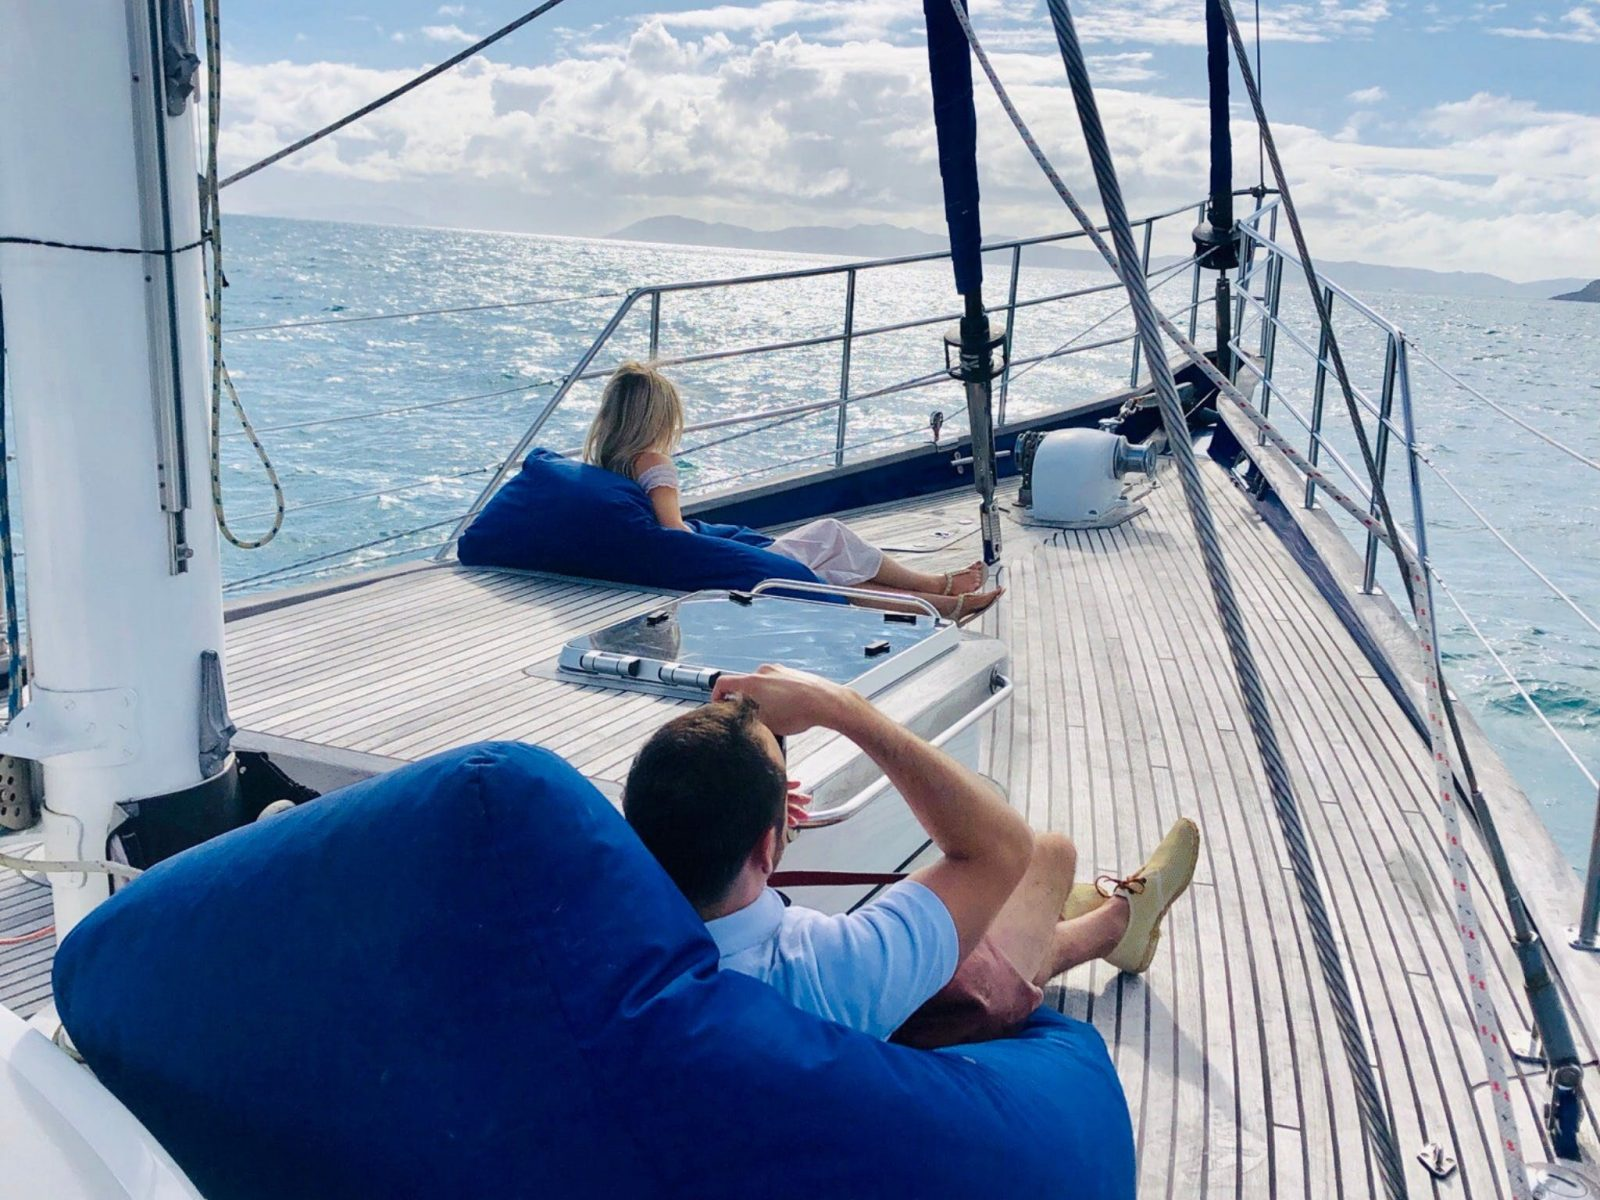 Relaxing on the luxurious sailing yacht at Whitsundays